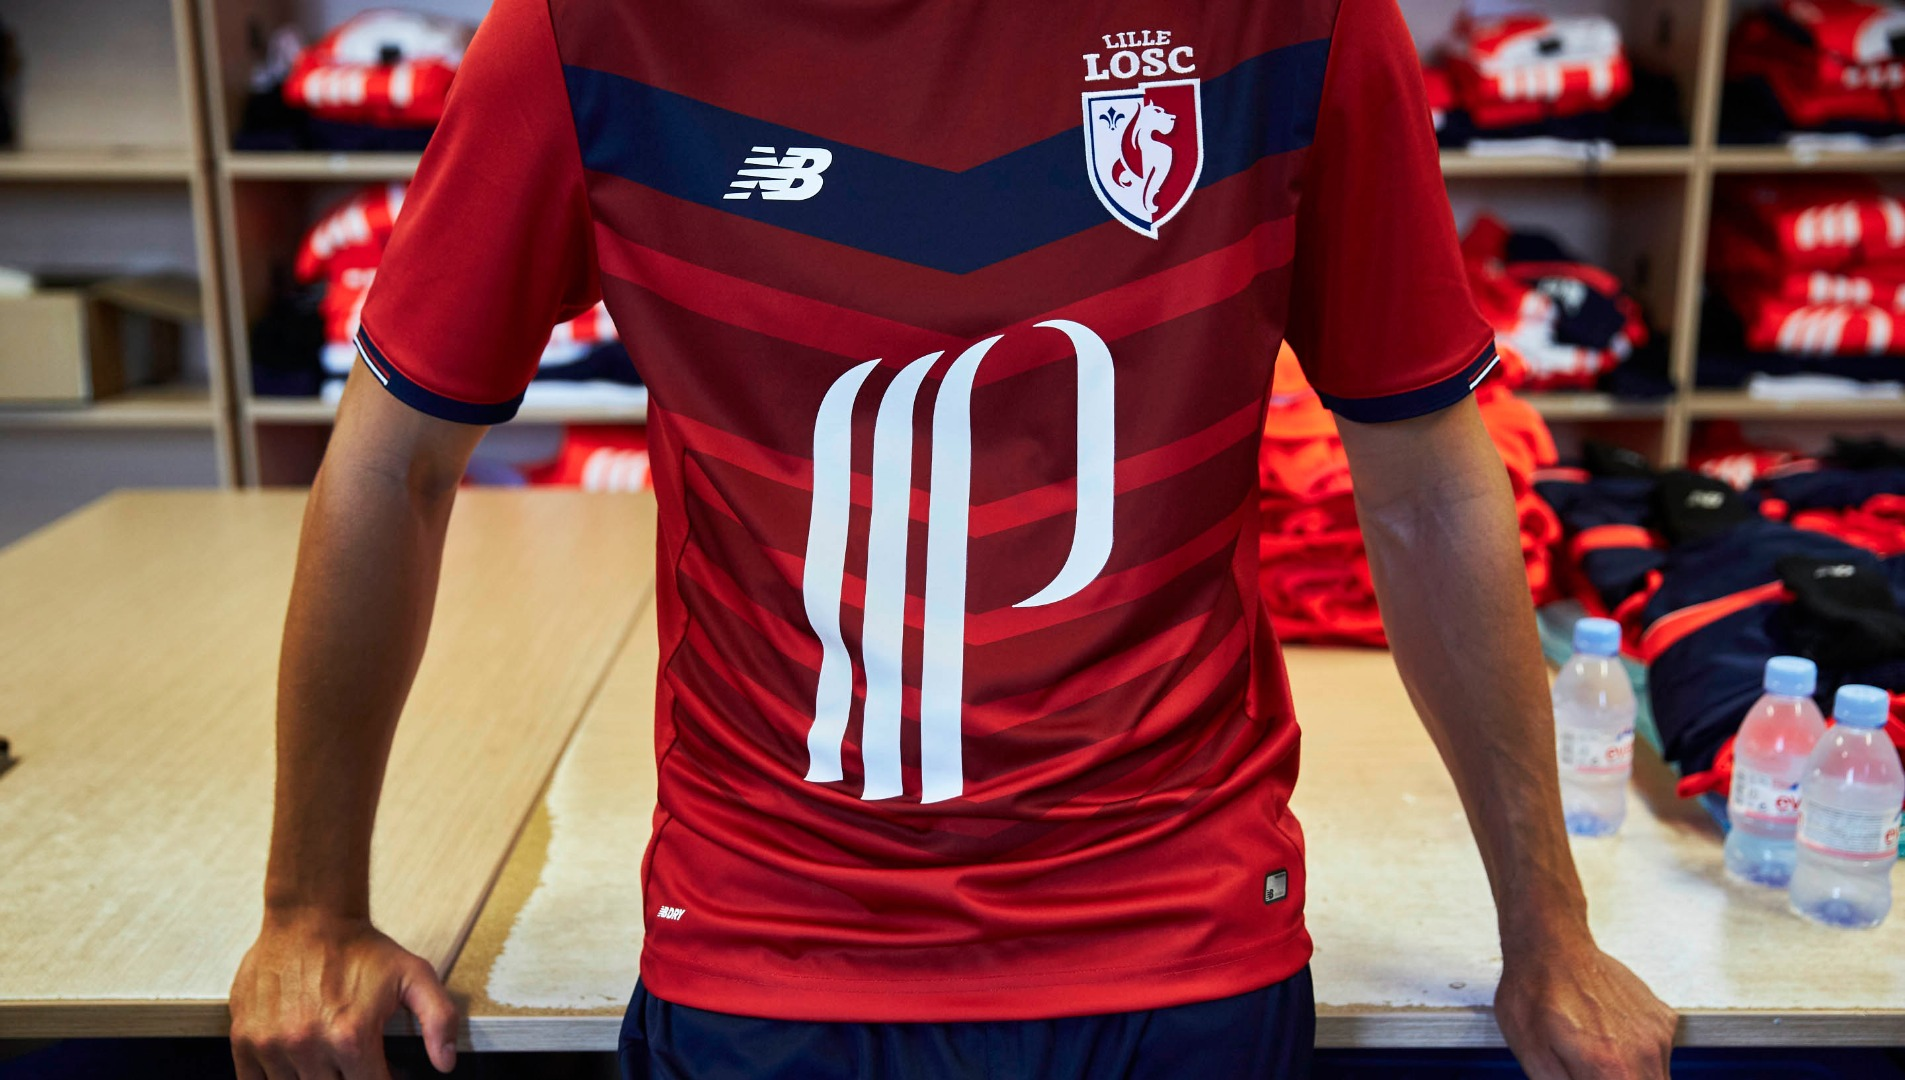 purchase cheap 55299 2fd86 LOSC Lille 2016/17 home kits by New Balance - SoccerBible